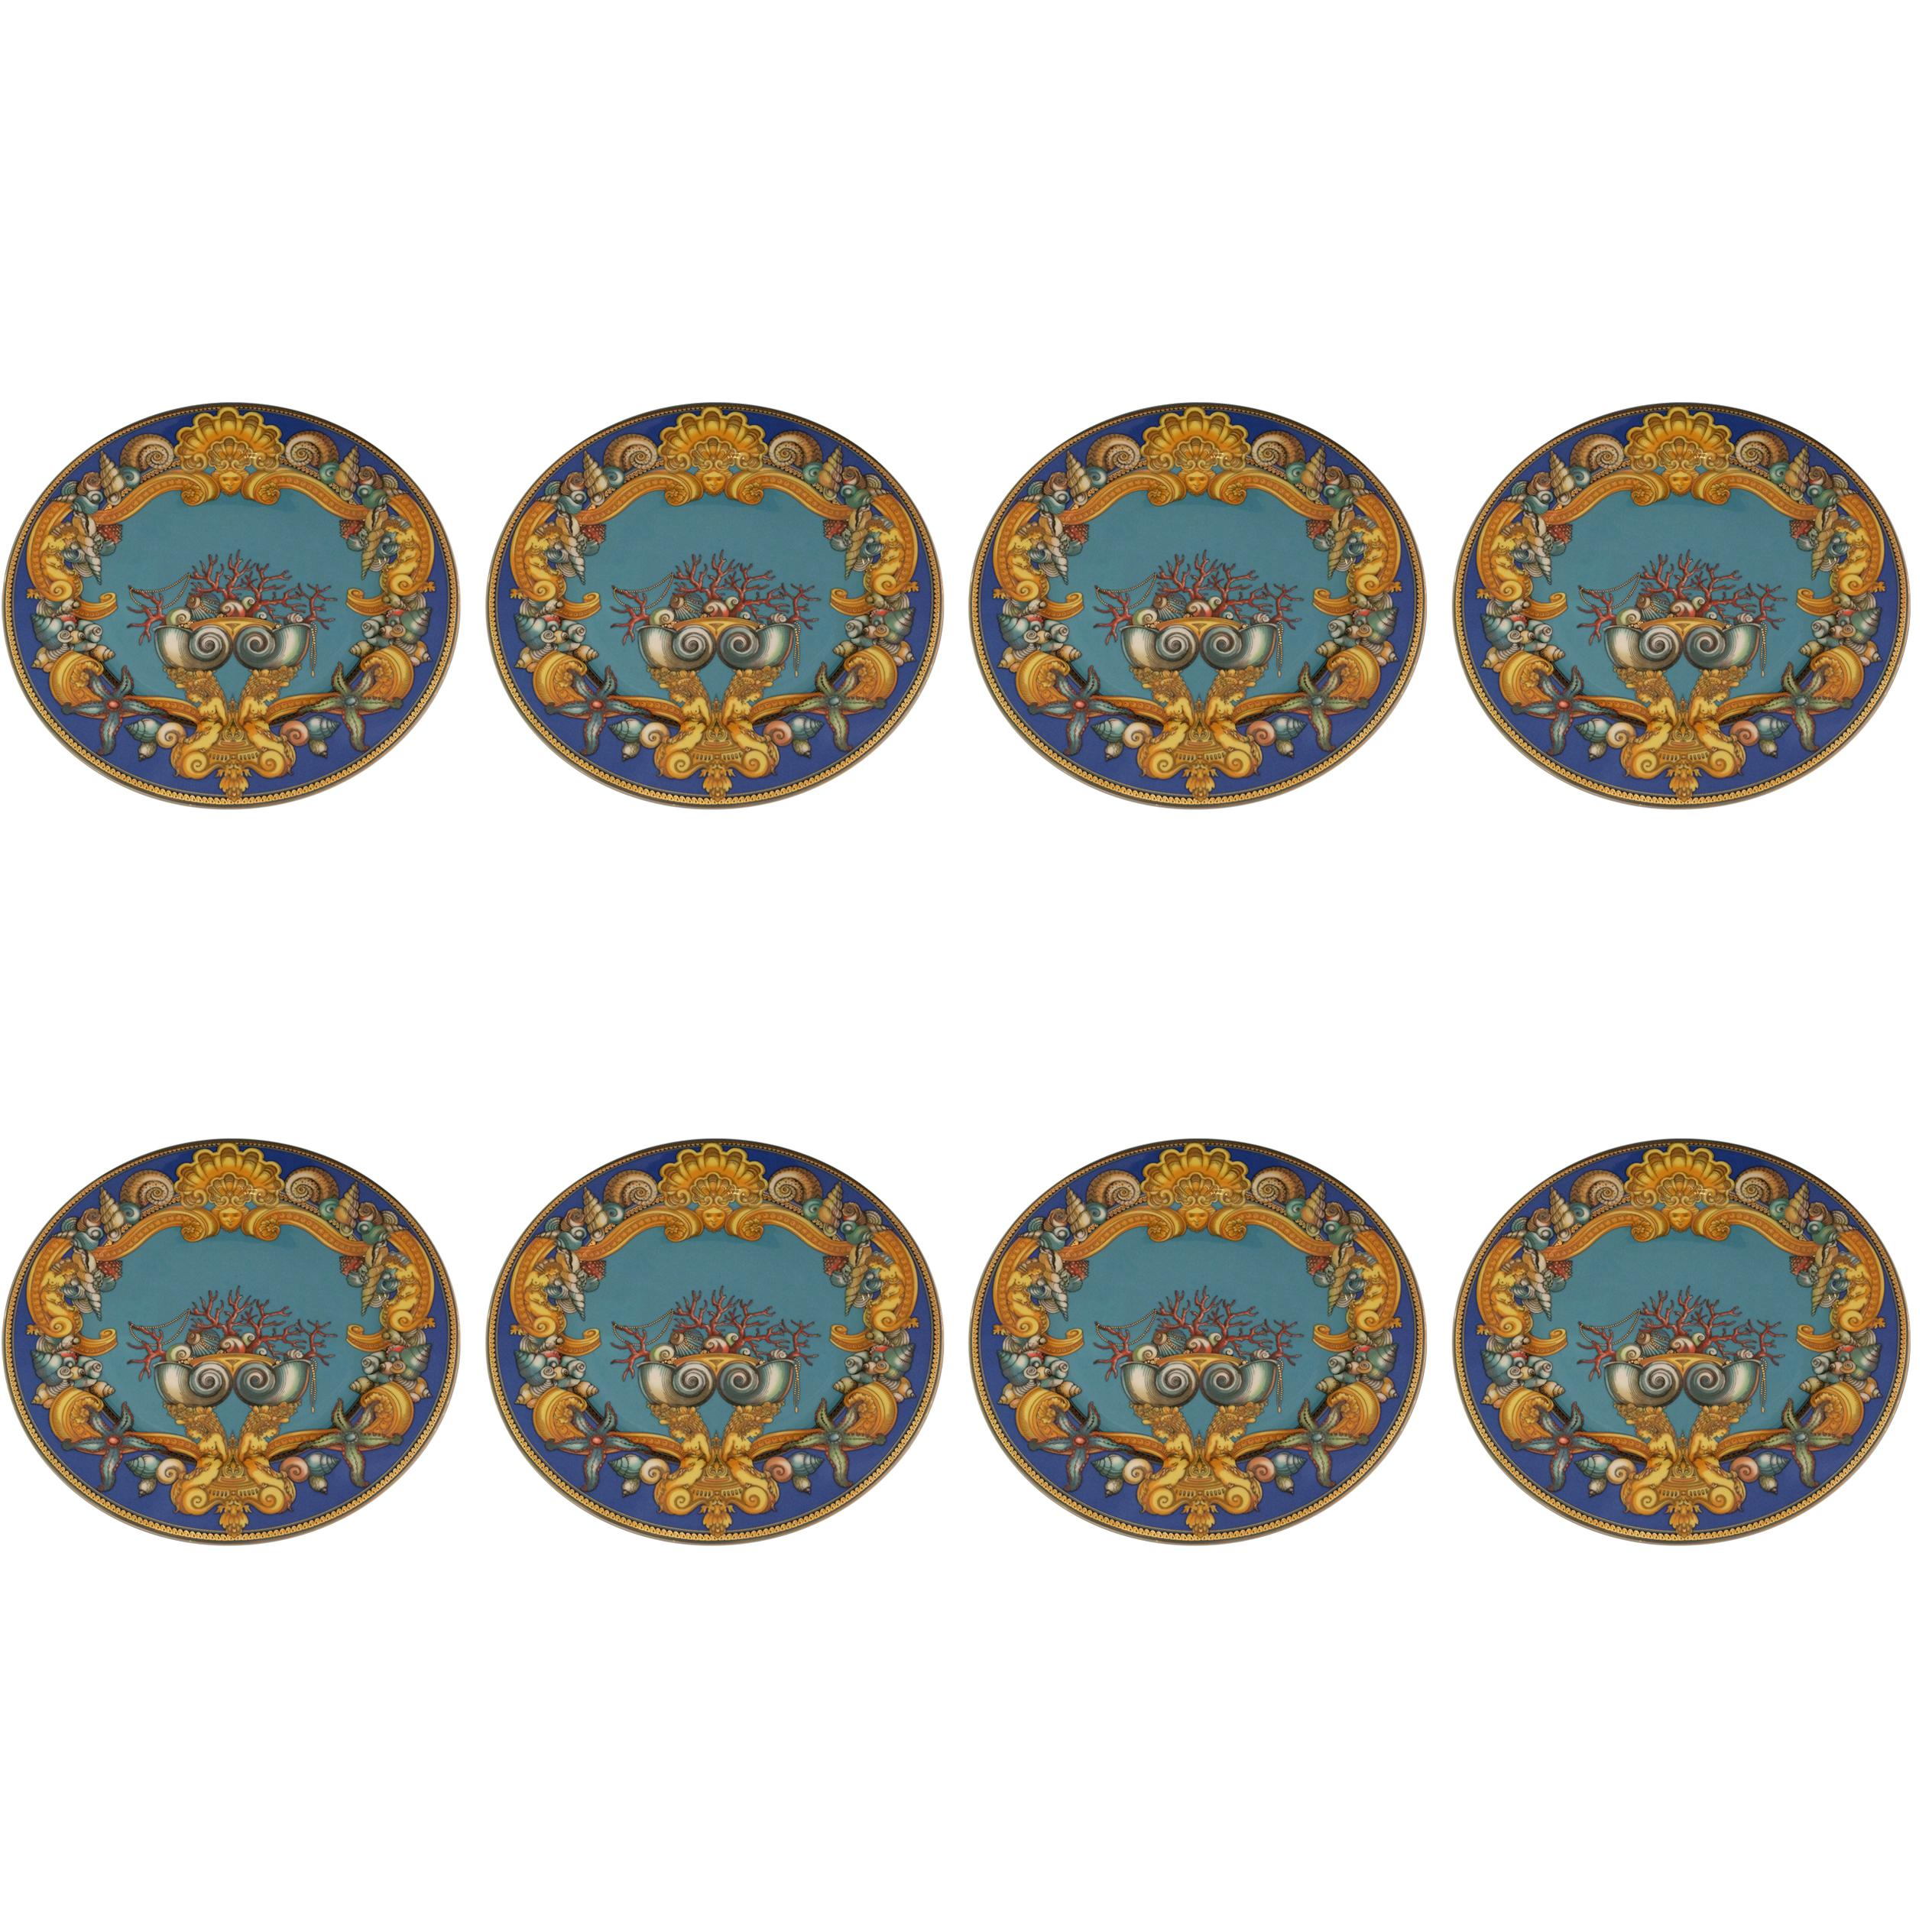 Fabulous Set of Eight Barely Used Versace La Mer Charger Plates Rosenthal China  sc 1 st  1stDibs & German Dinner Plates - 68 For Sale at 1stdibs